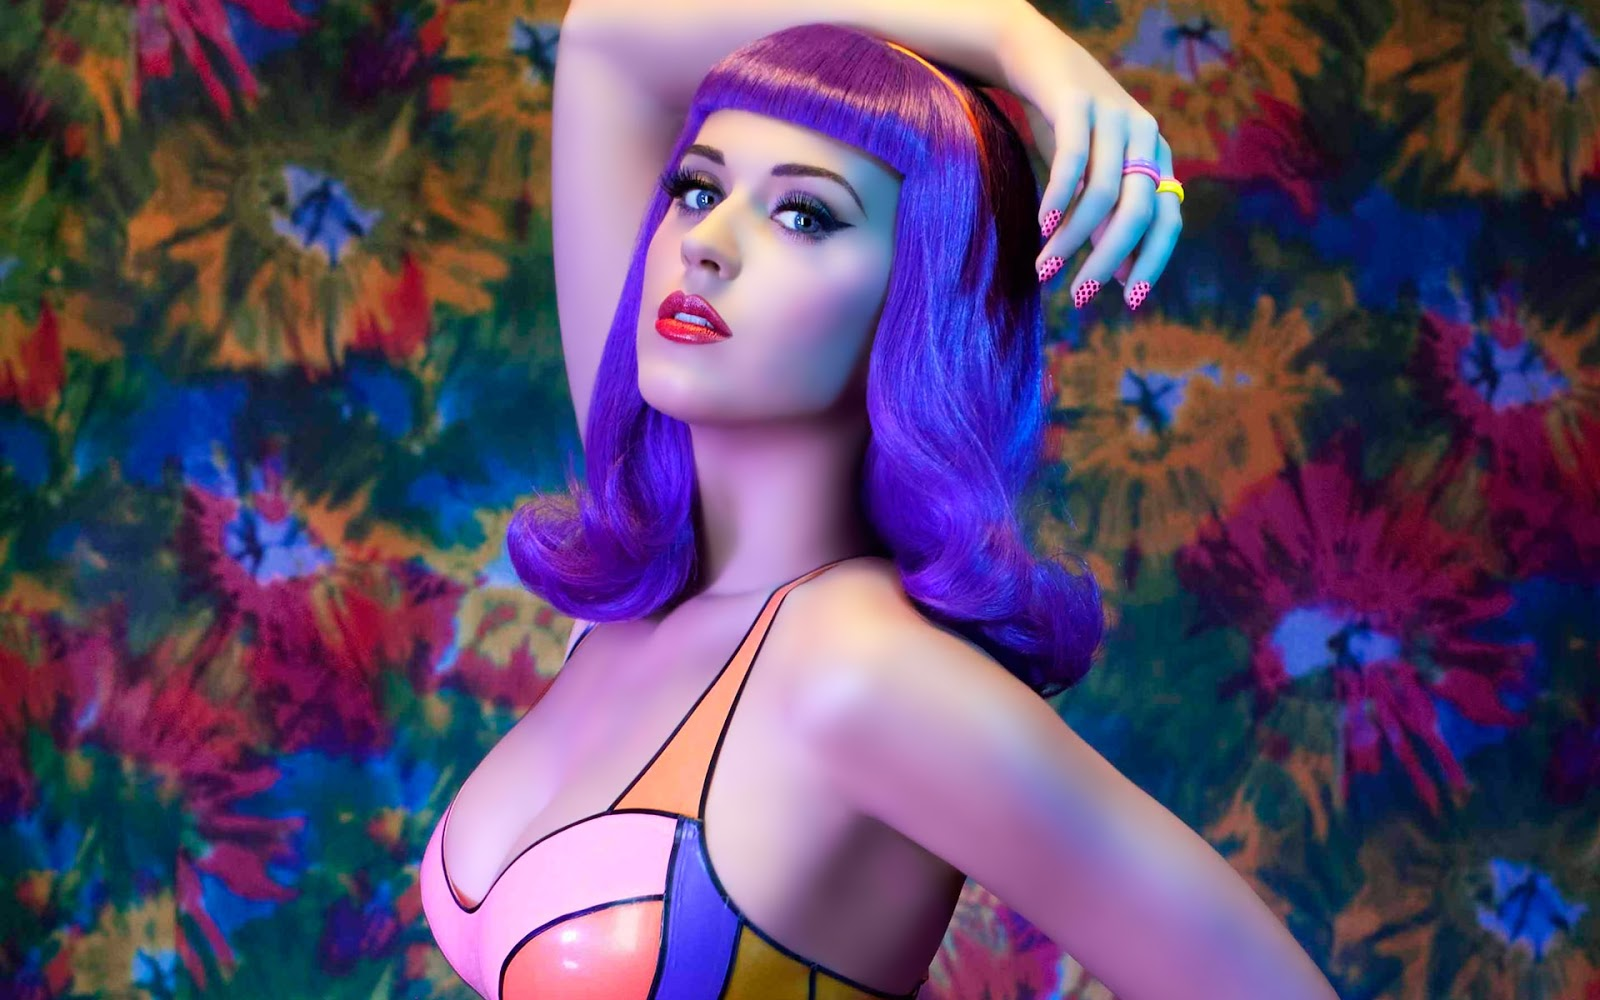 katy perry wallpaper 1080p - photo #18